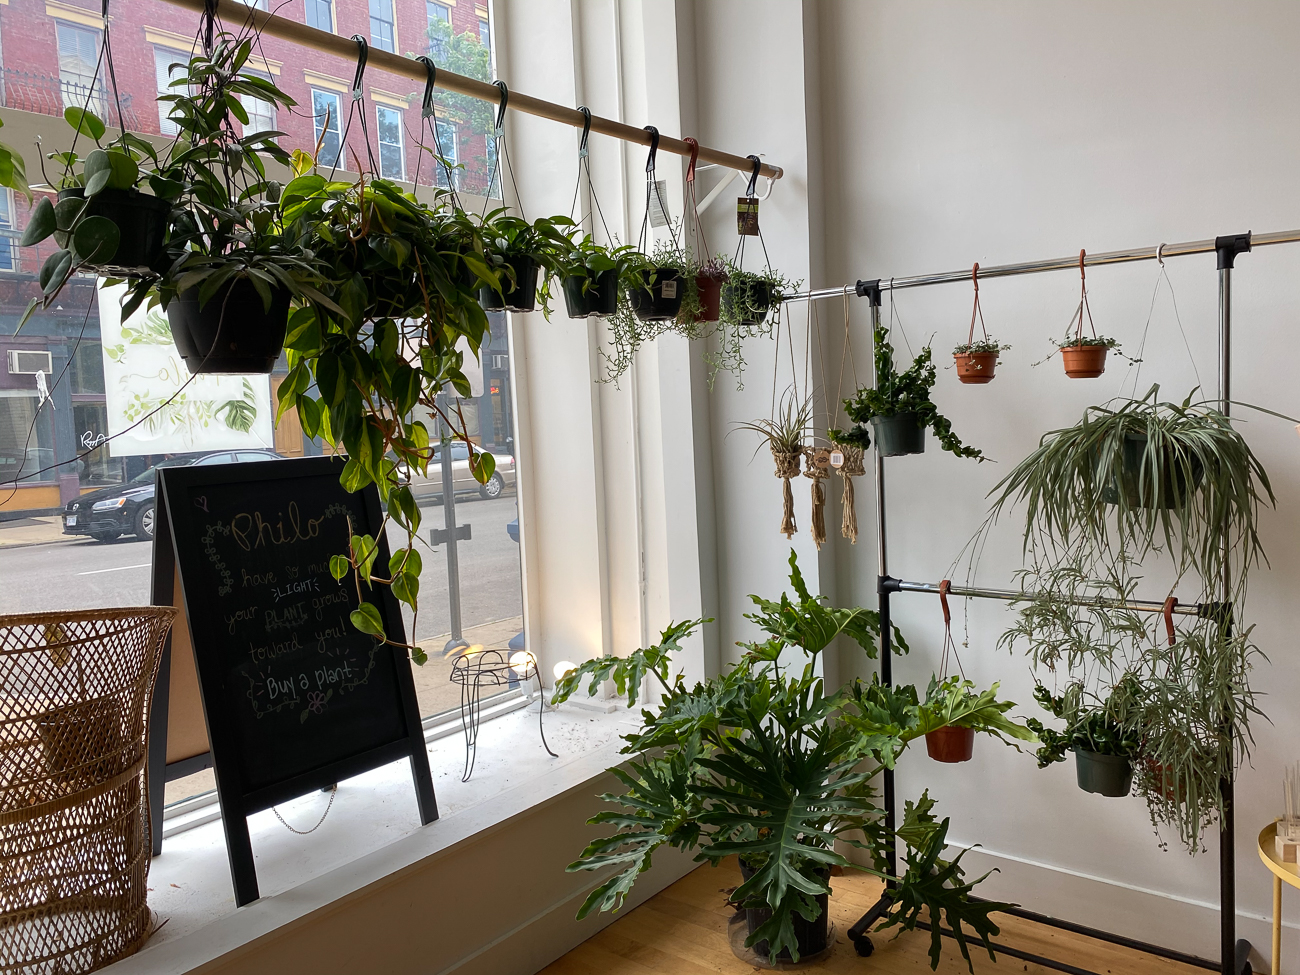 "Savannah Chambers (IG: @Philo_Cincy) from Amelia / ""I try and keep plants all over in the house. Our favorite space is the bedroom. Most of my harder to find and rare plants are here as I want it to be a peaceful and calm space. My favorite plants vary, but my Hoya corner is currently my favorite along side my first 'rare' plant, which is my variegated gigantum. I'd love the room to go full jungle. Plants freely creeping and growing. Golden hour or first thing in the morning is my favorite time to just sit and look around at them."" BUSINESS: Philo Cincinnati (IG: @Philo_cincy) at 1411 Main Street in Over-the-Rhine / Image courtesy of Savannah Chambers // Published: 6.13.20"